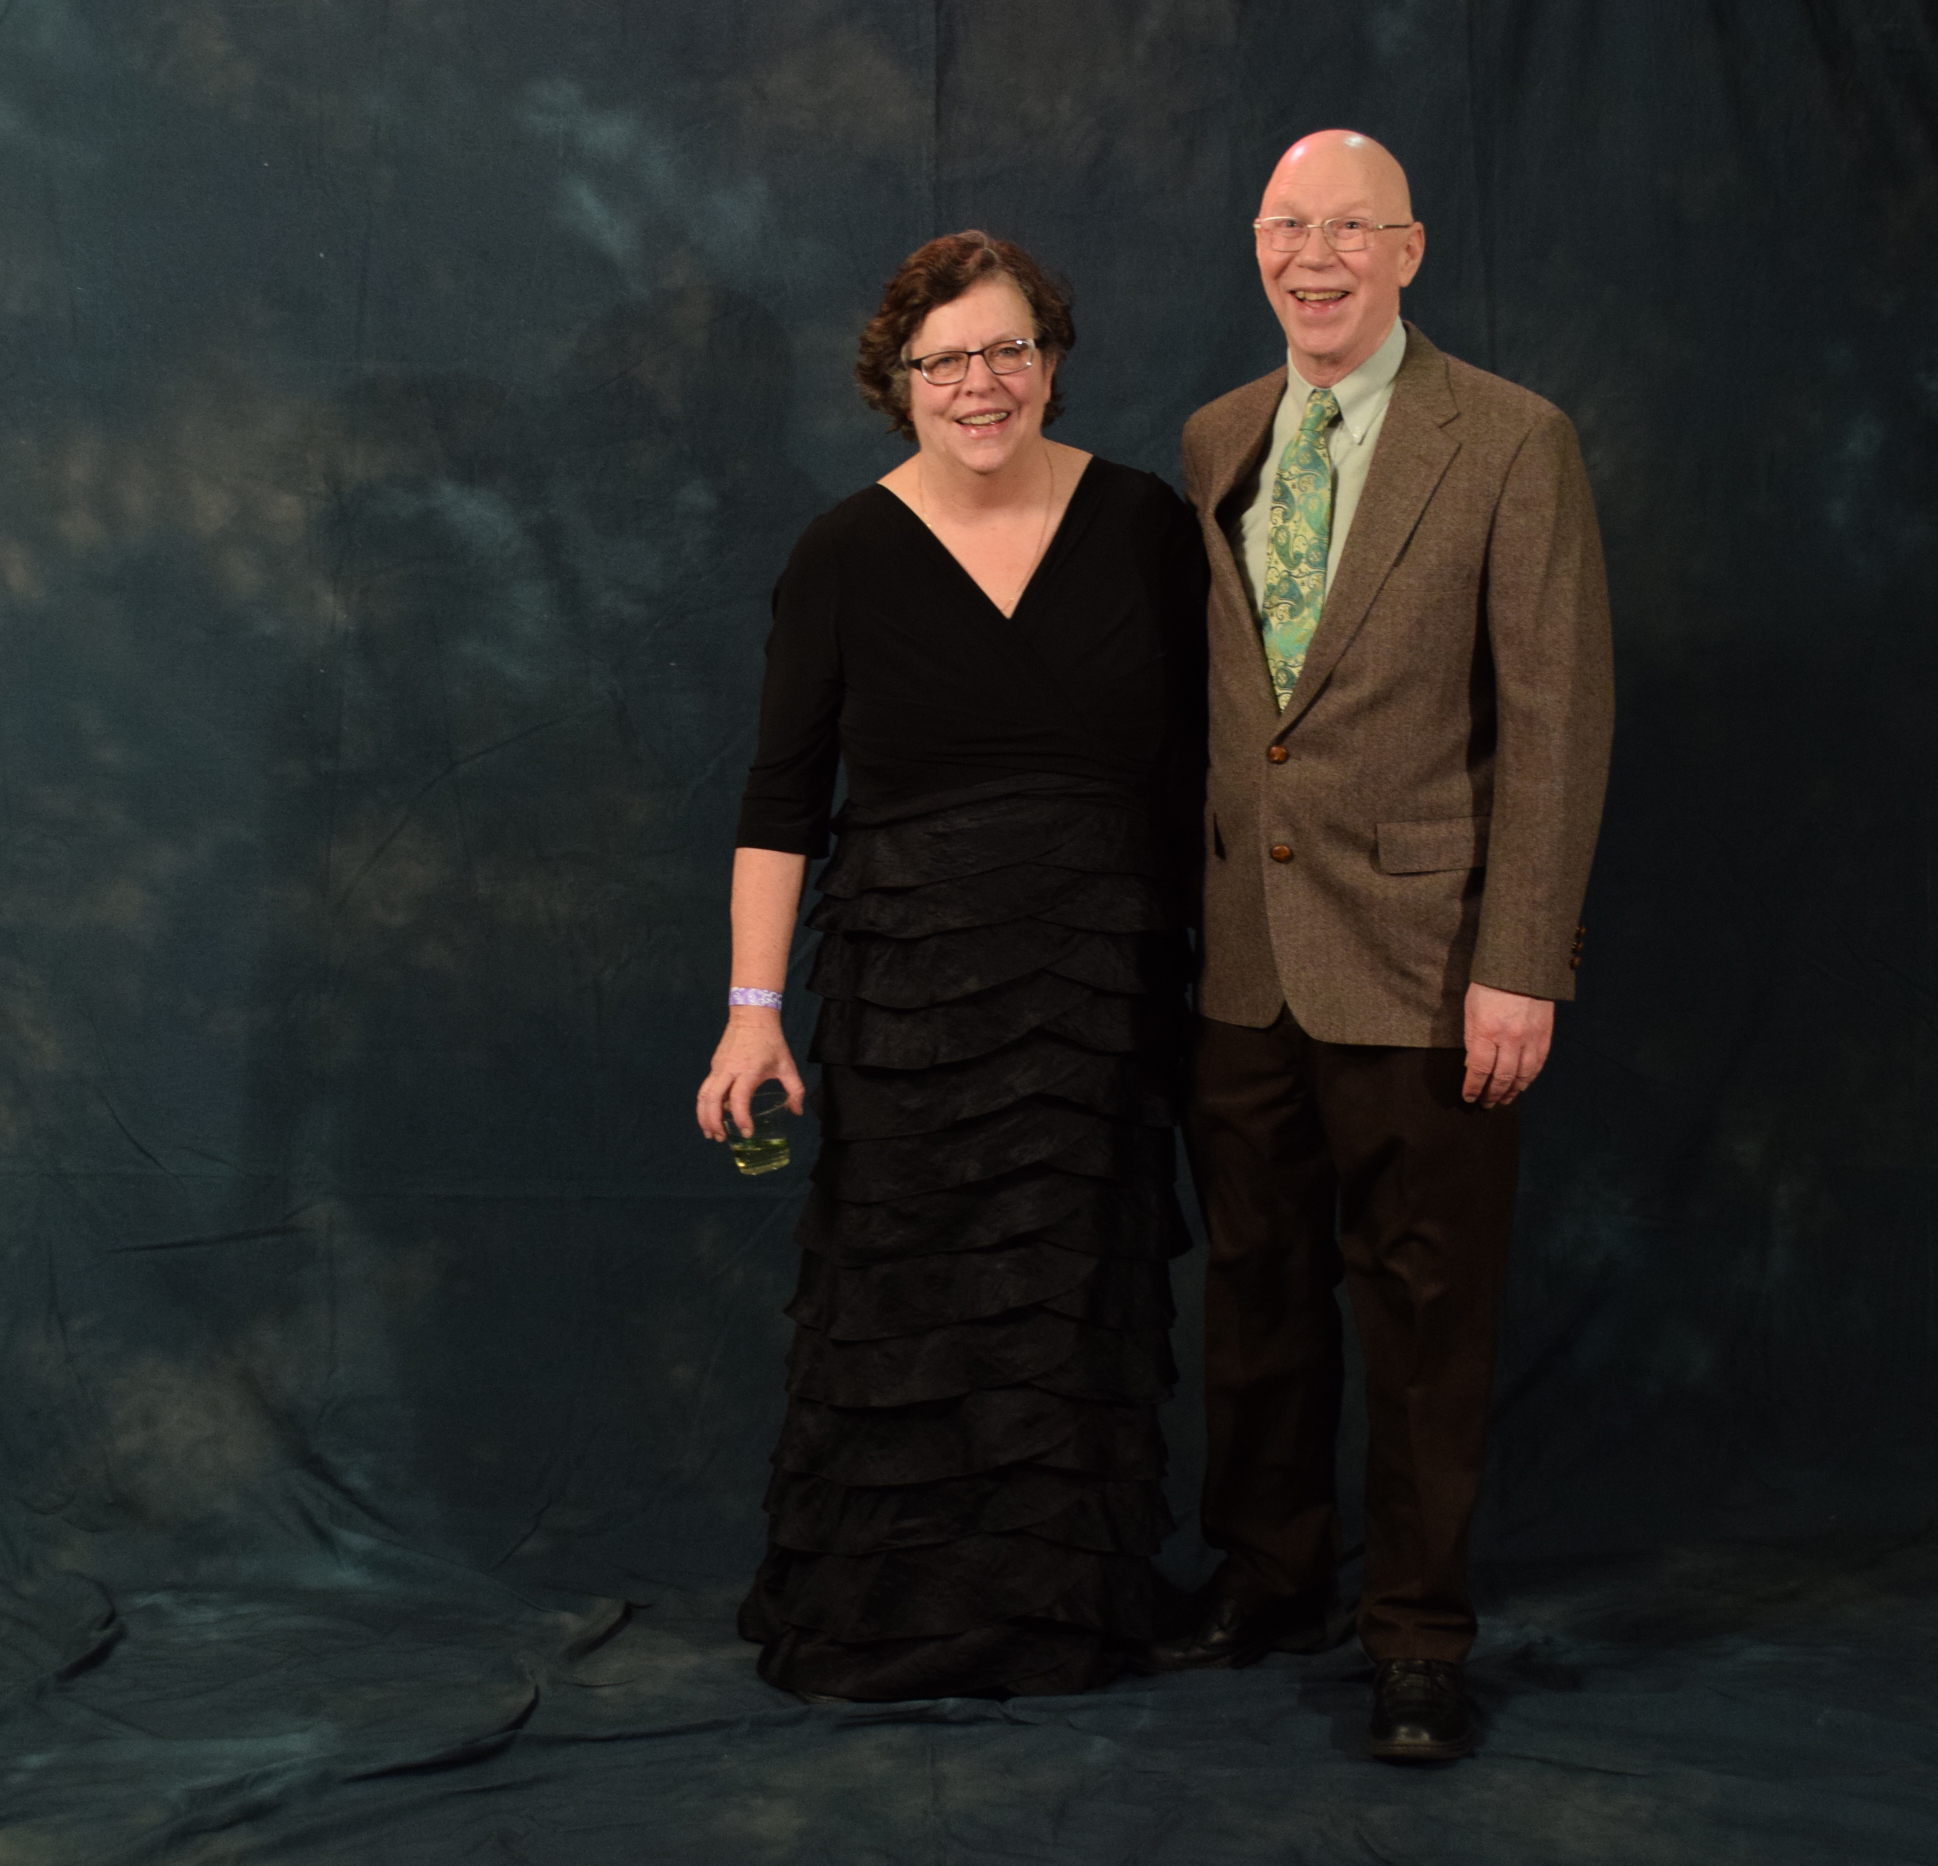 Jane Ginter and Bob Coghill.  Coghill received his green tie from a Tie of the Month Club.  (Photo by Skip Gray/KTOO)